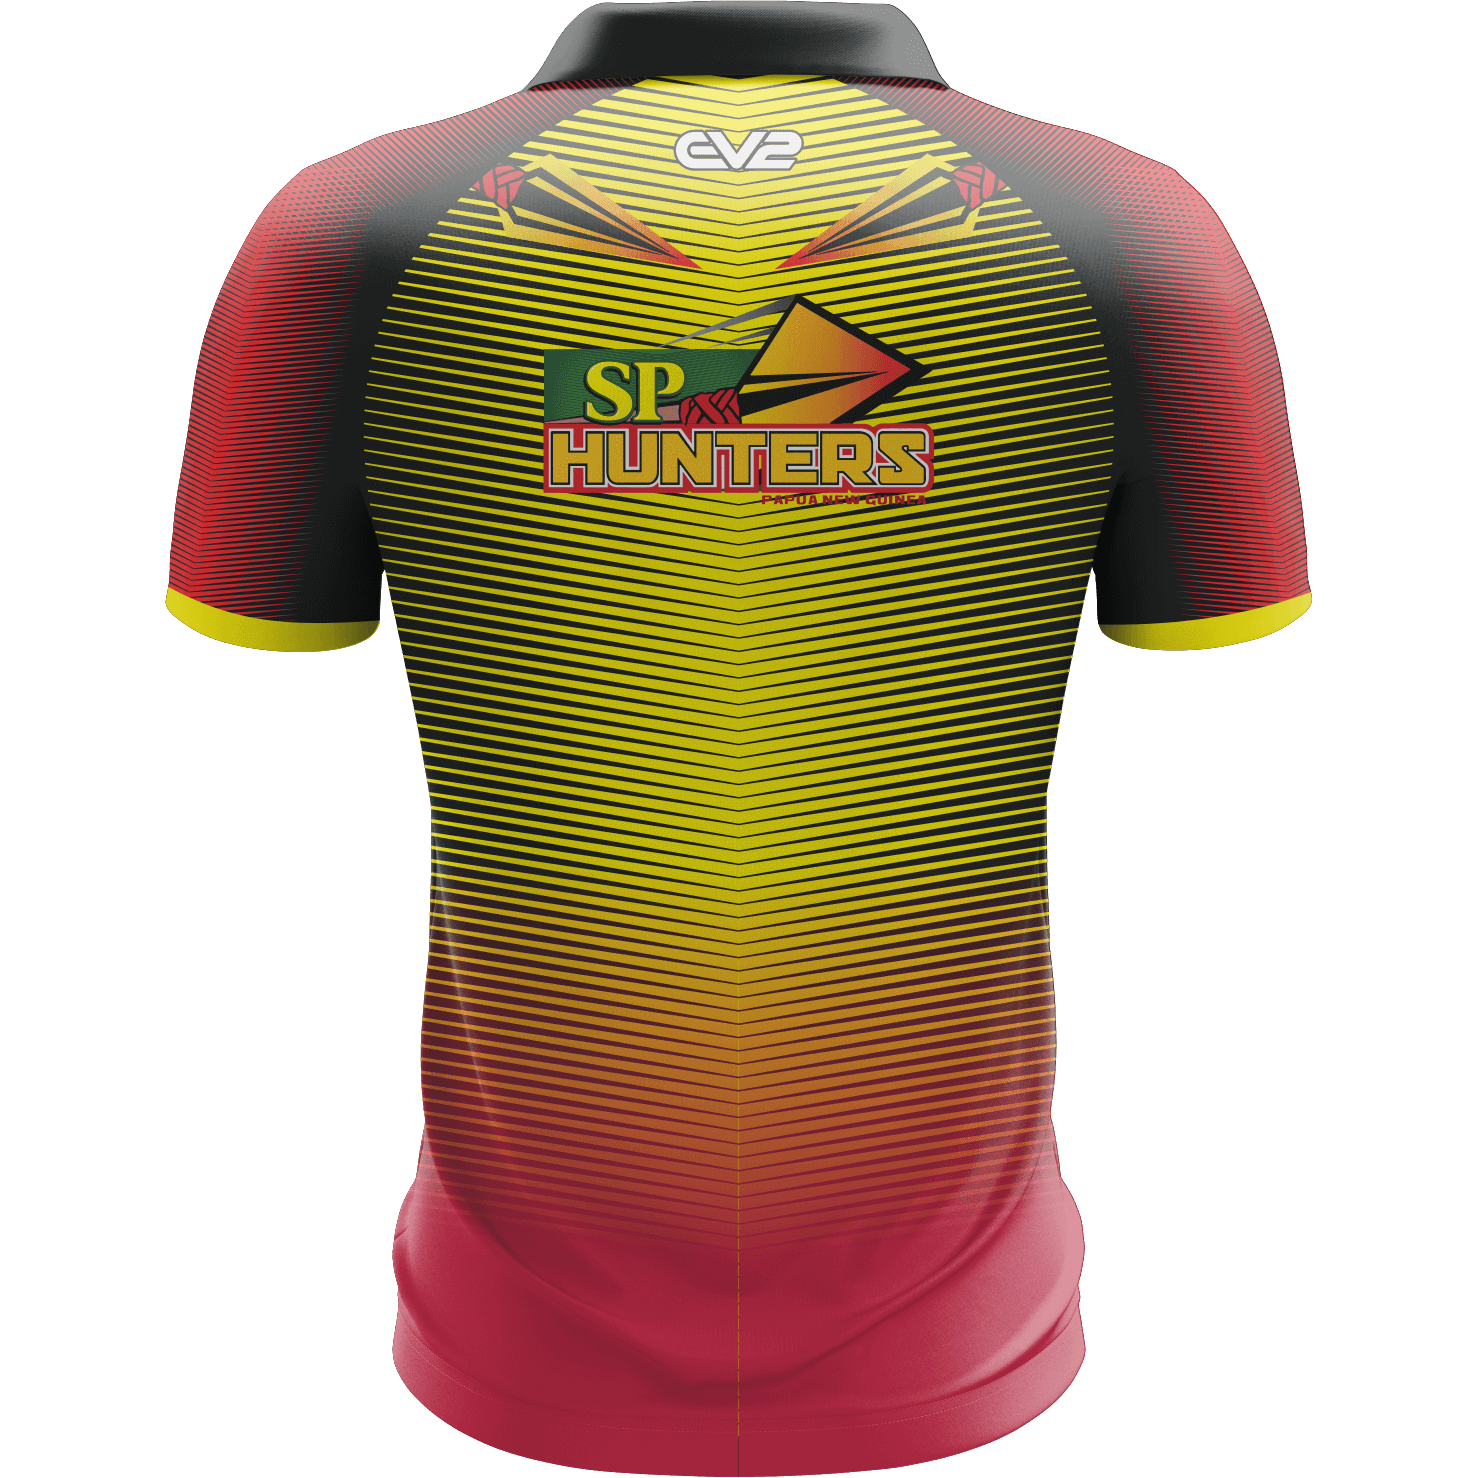 EMU Sportswear:2019 SP PNG Hunters Players Polo